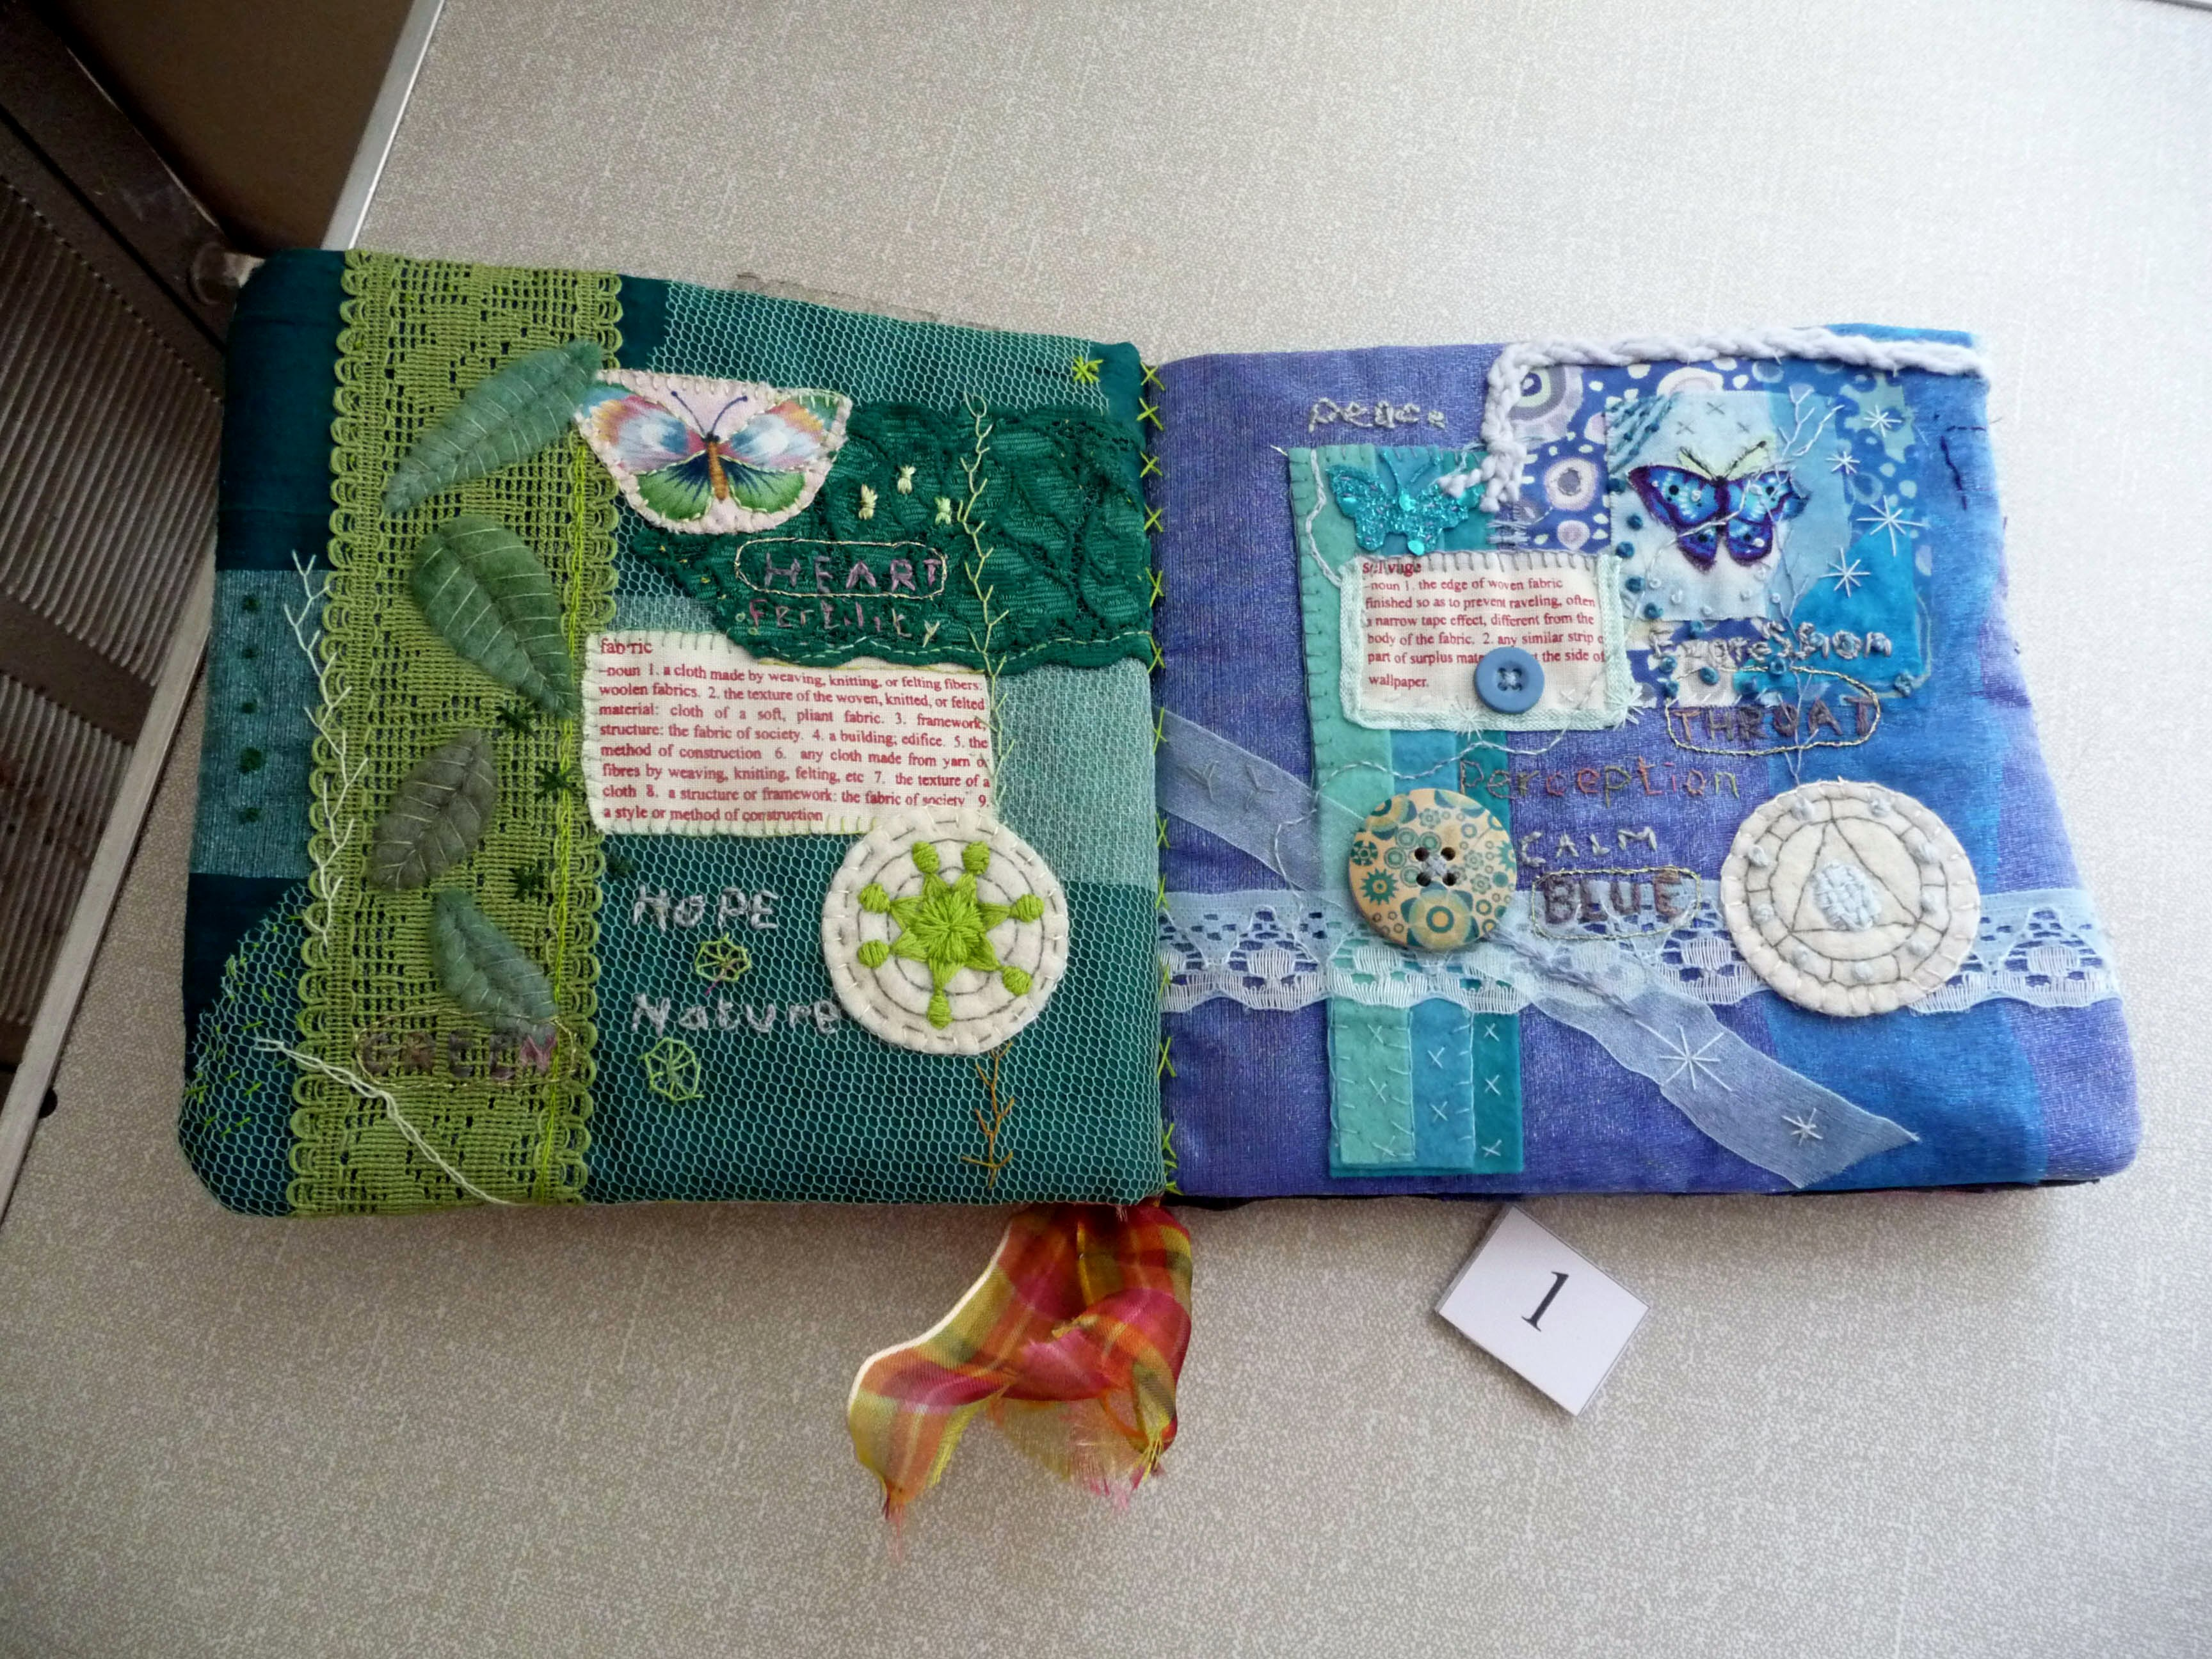 Embroidered book by Mal Ralston, winner of 2014 Colour Competition